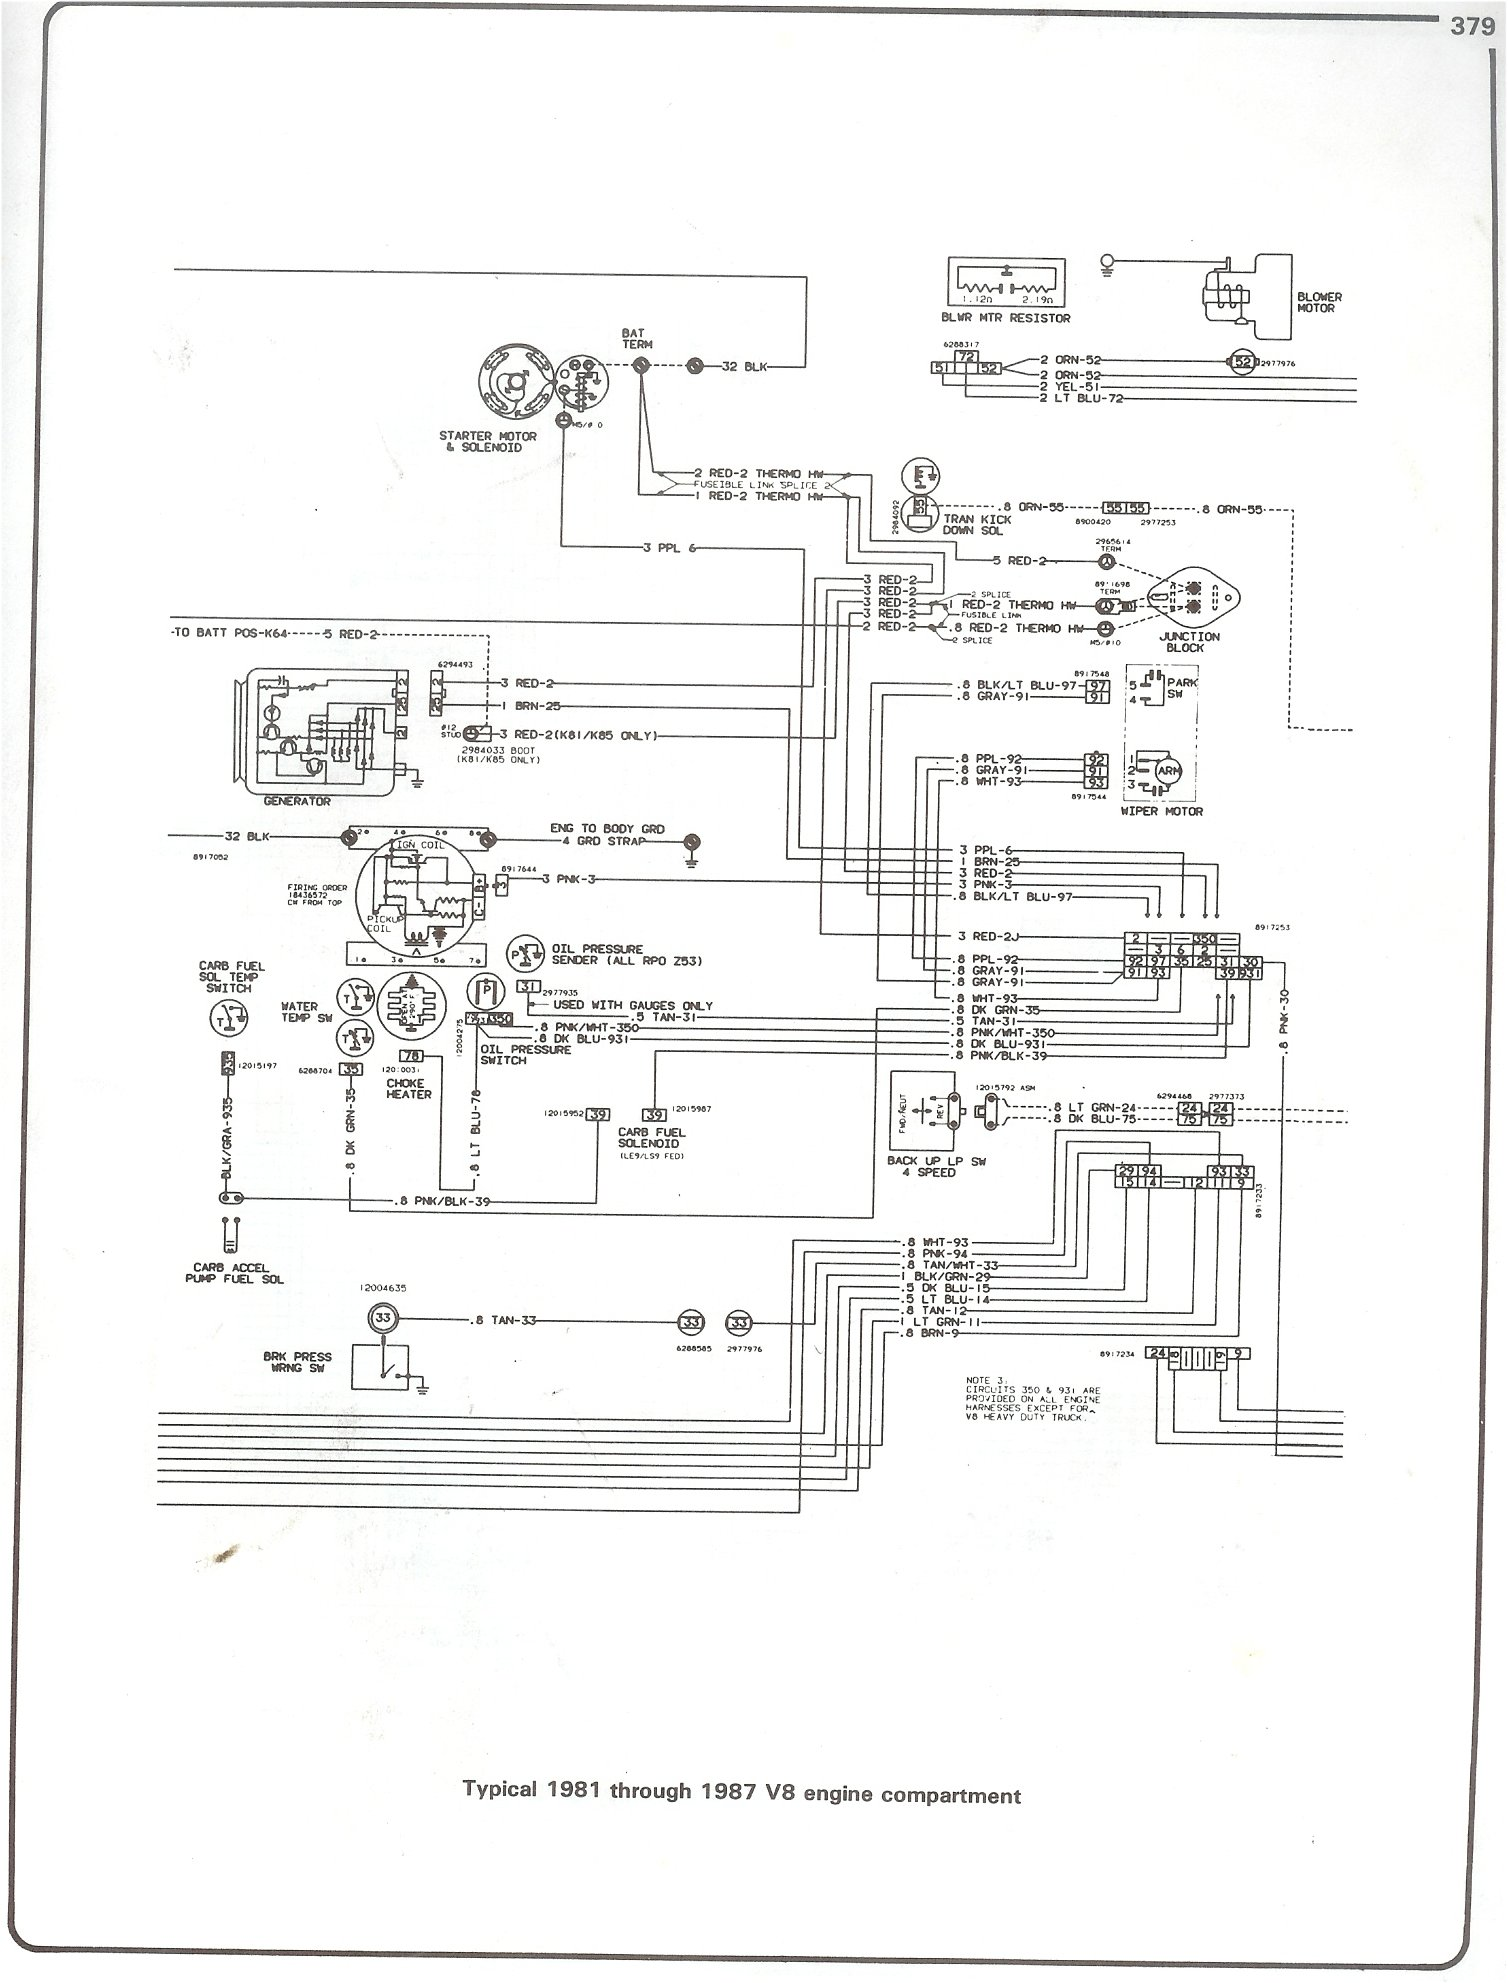 81 87_V8_engine complete 73 87 wiring diagrams  at arjmand.co